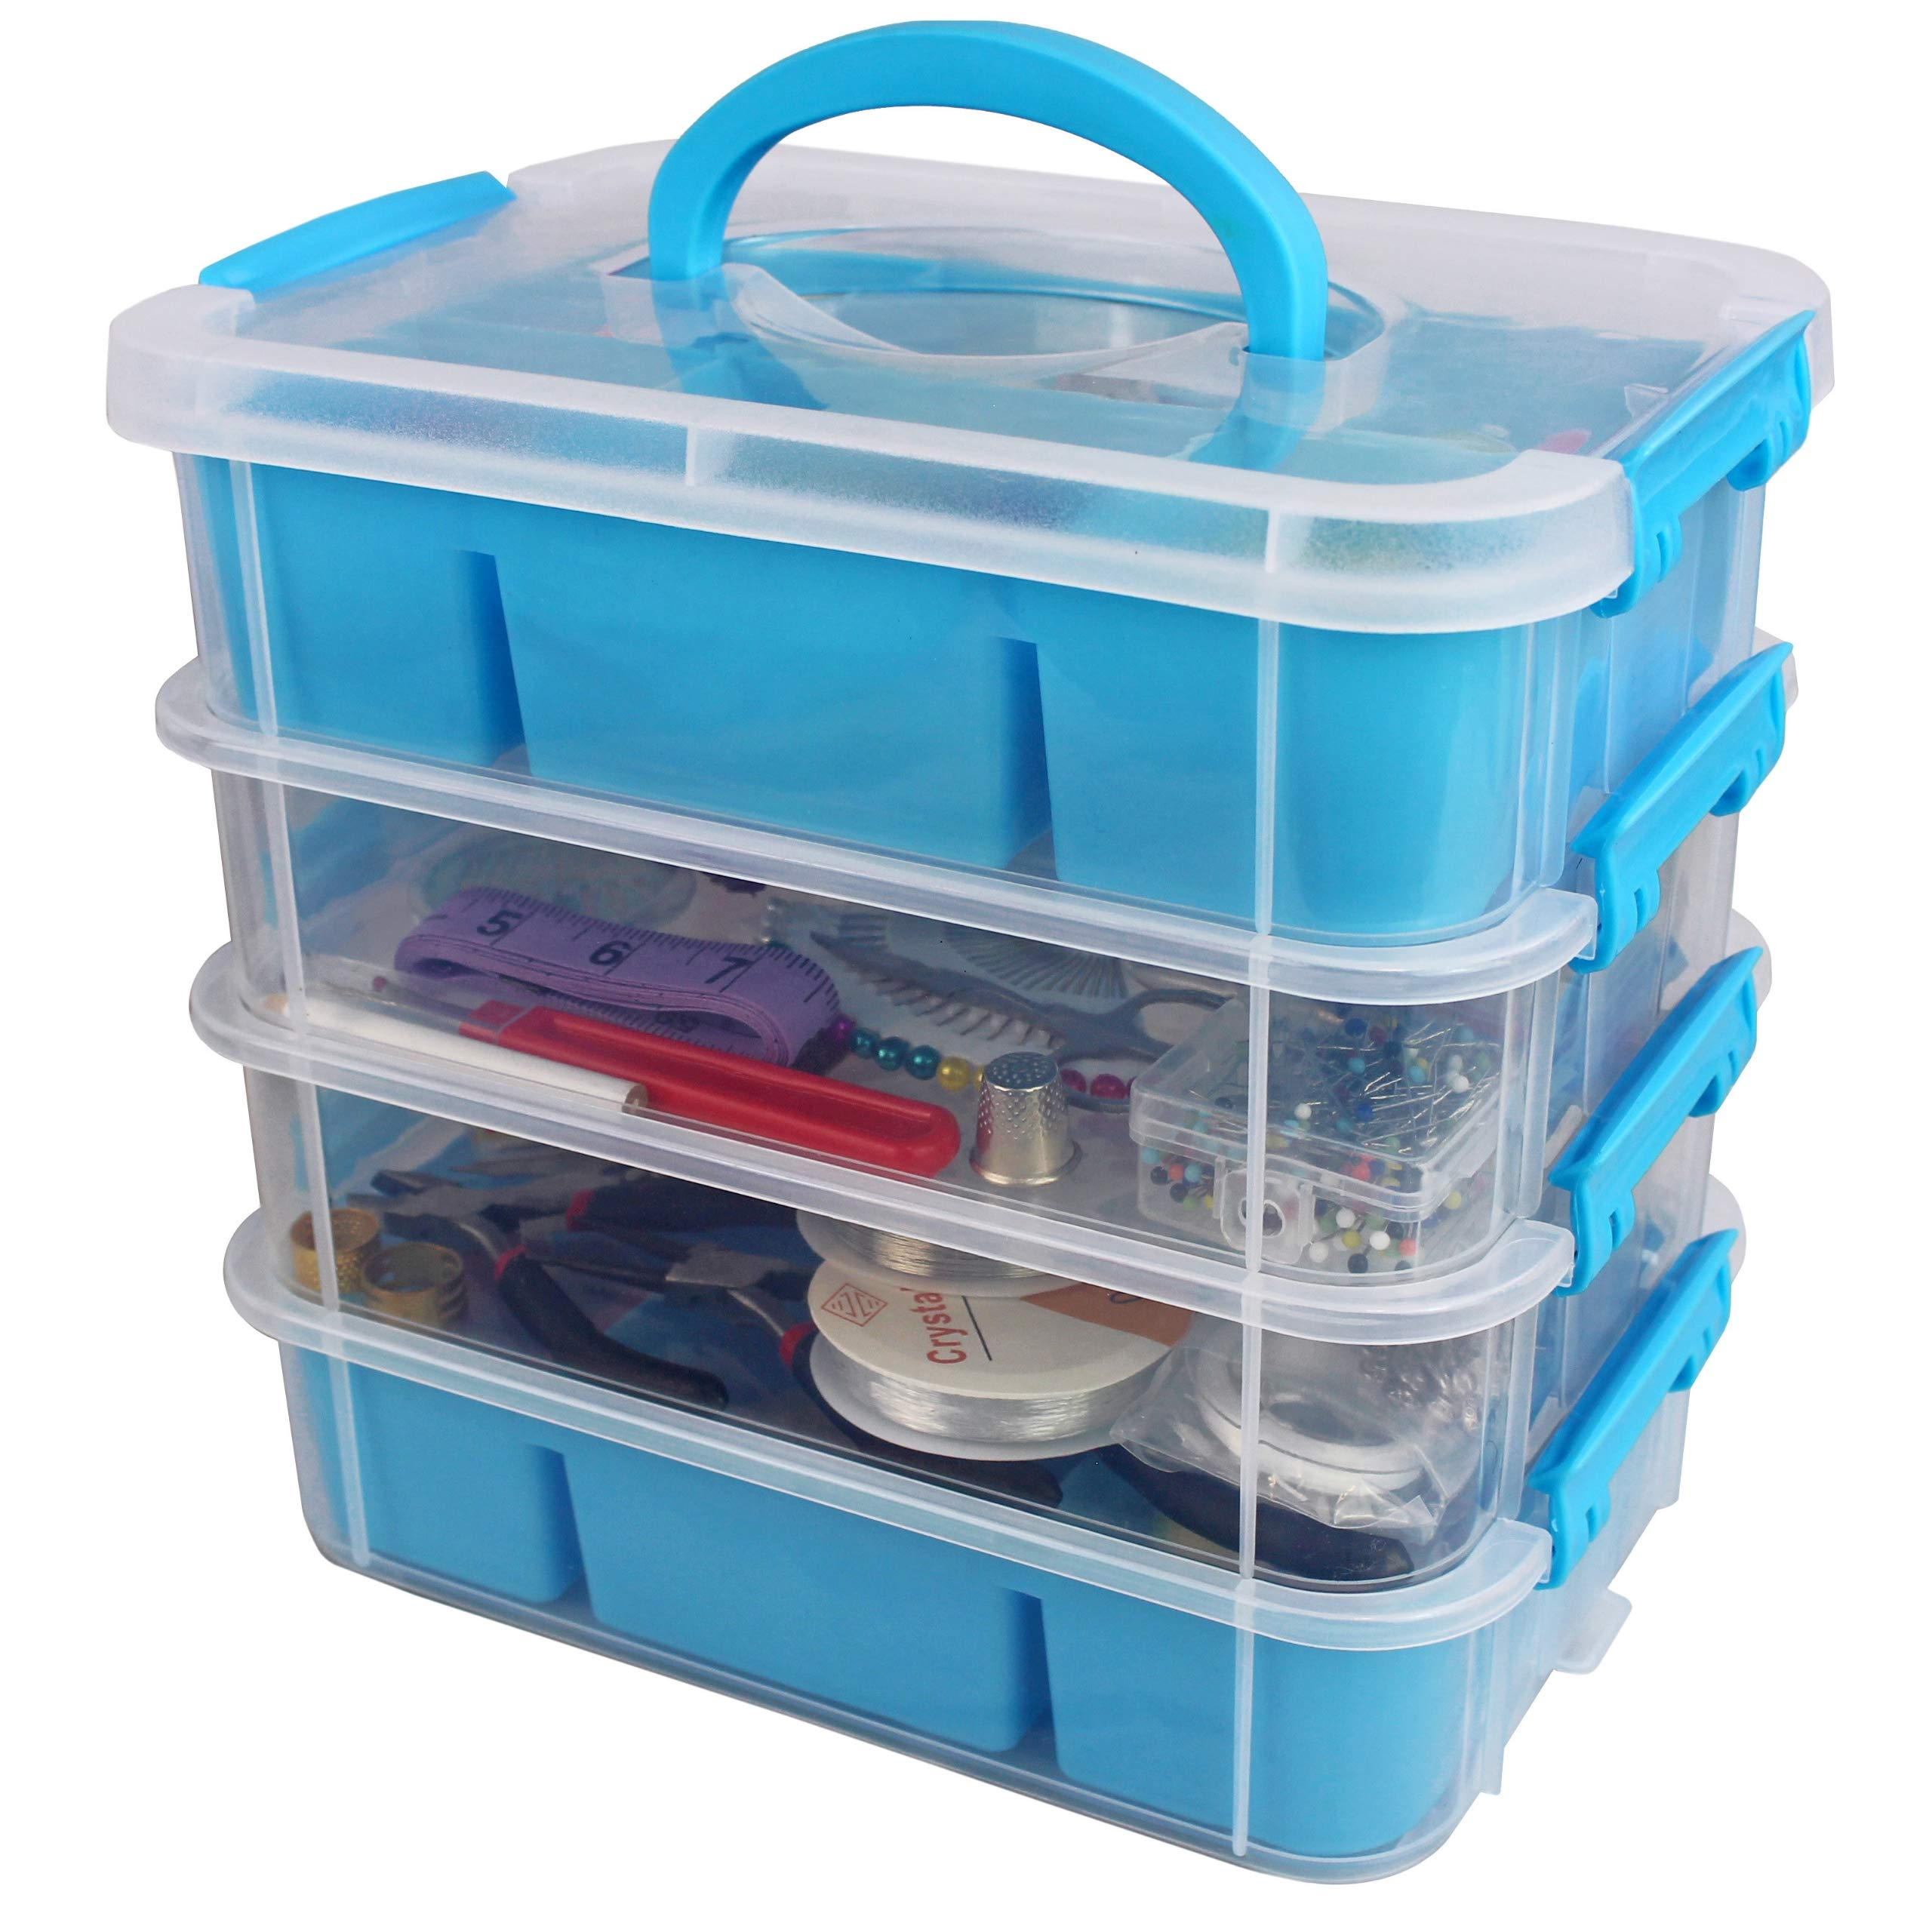 Stackable Plastic Storage Containers with 4 trays.